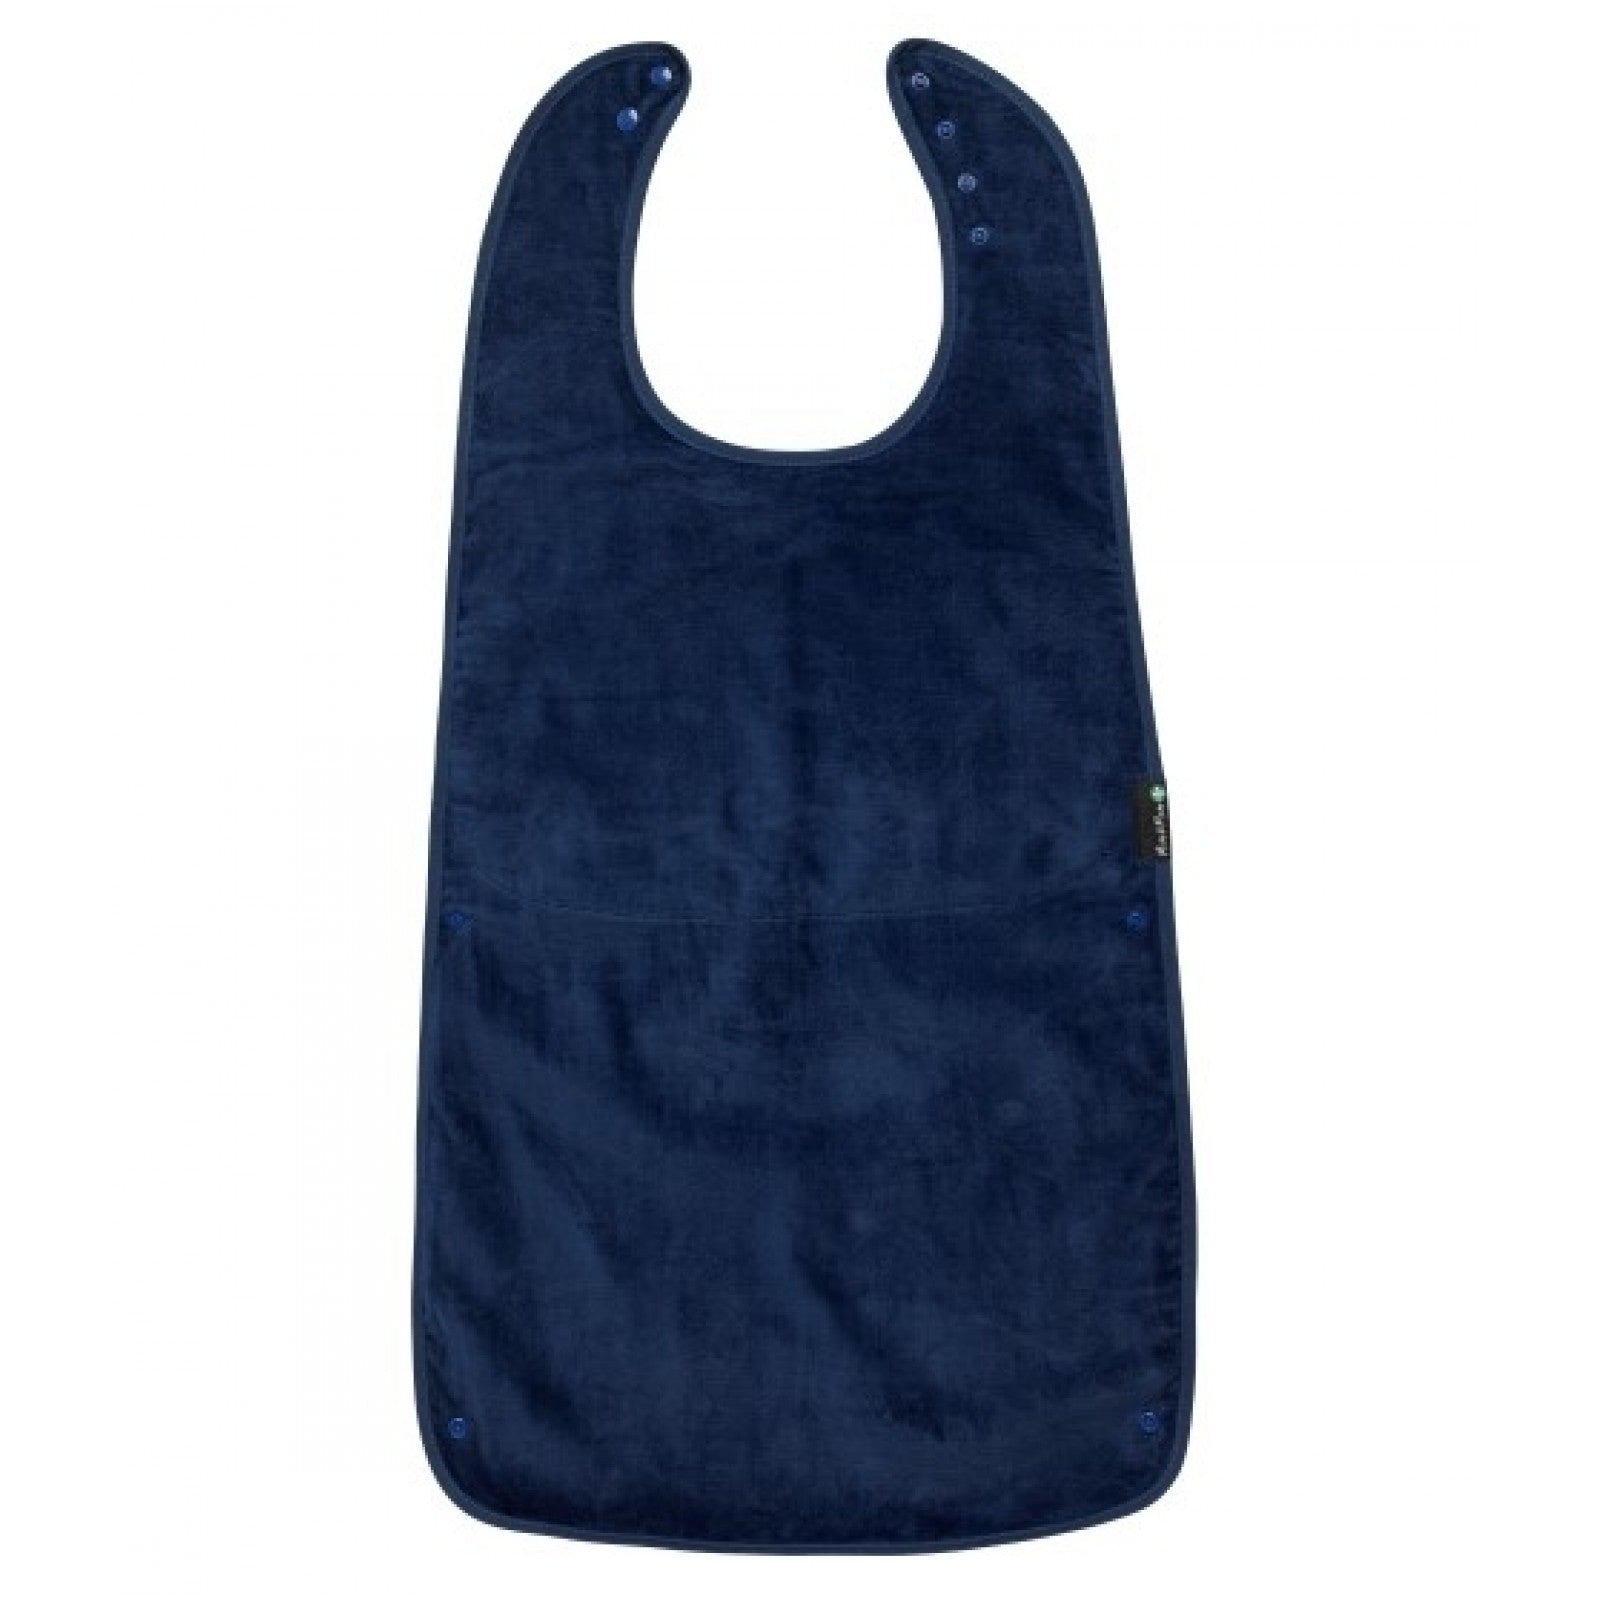 Supersized Feeding Apron Navy Blue Special Needs